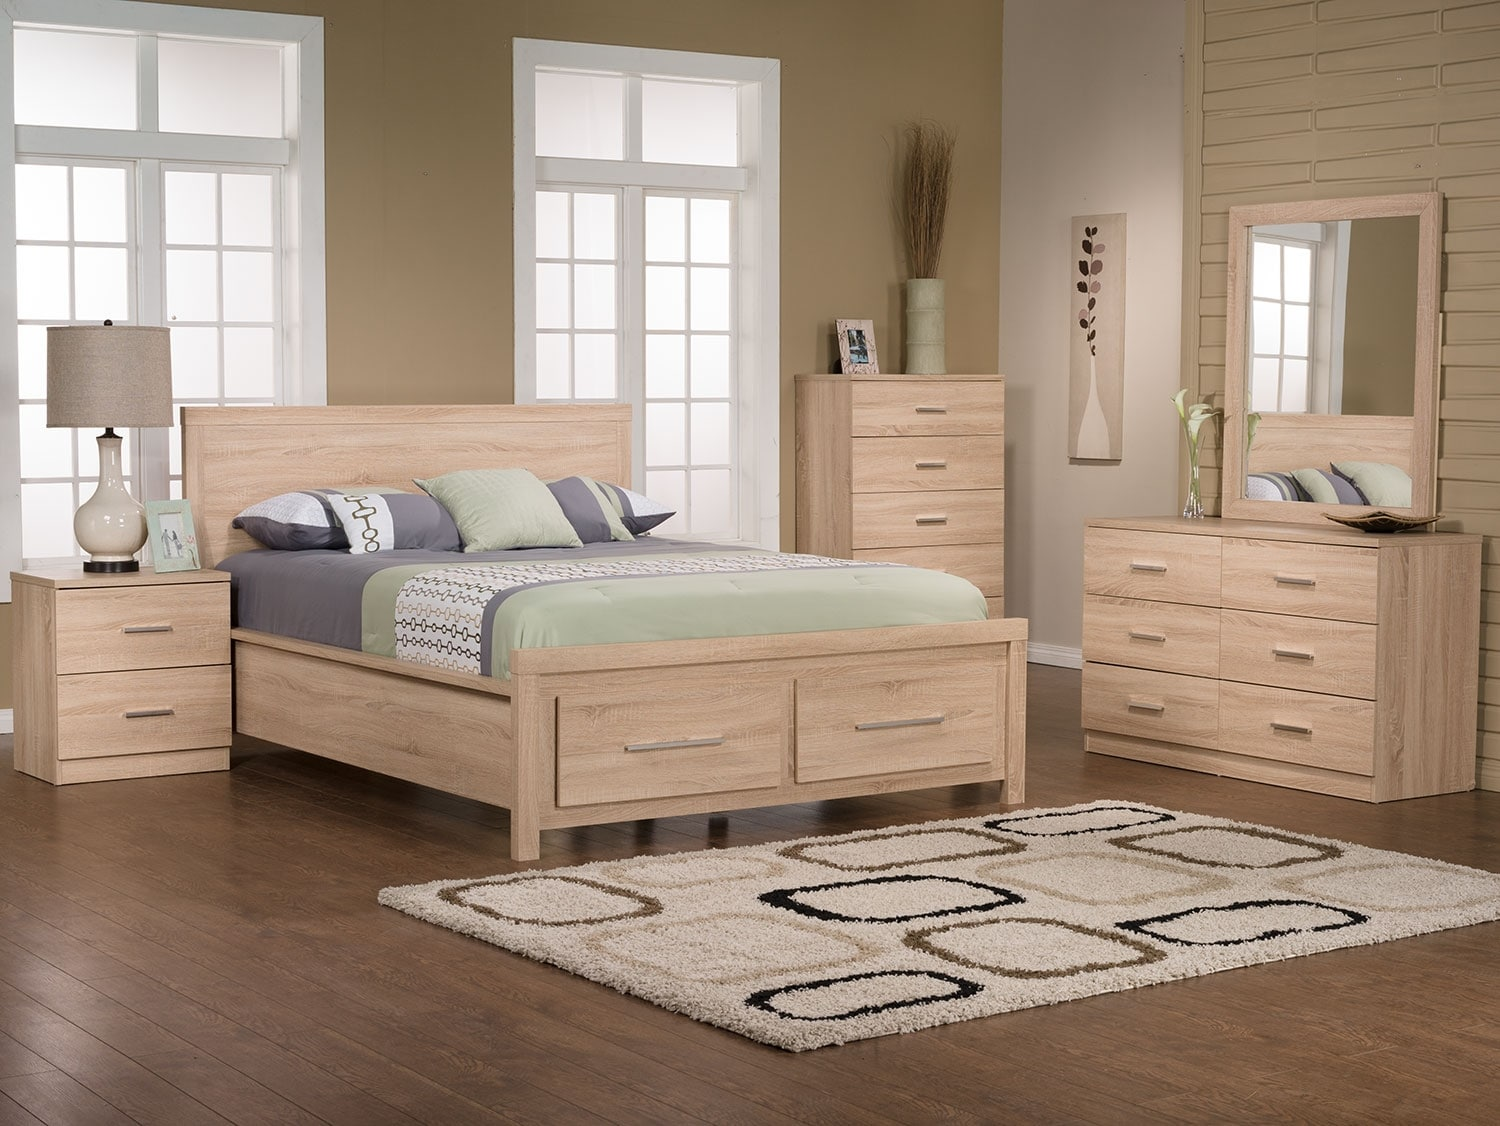 Bedroom Furniture - Sierra Full 5pc Bedroom